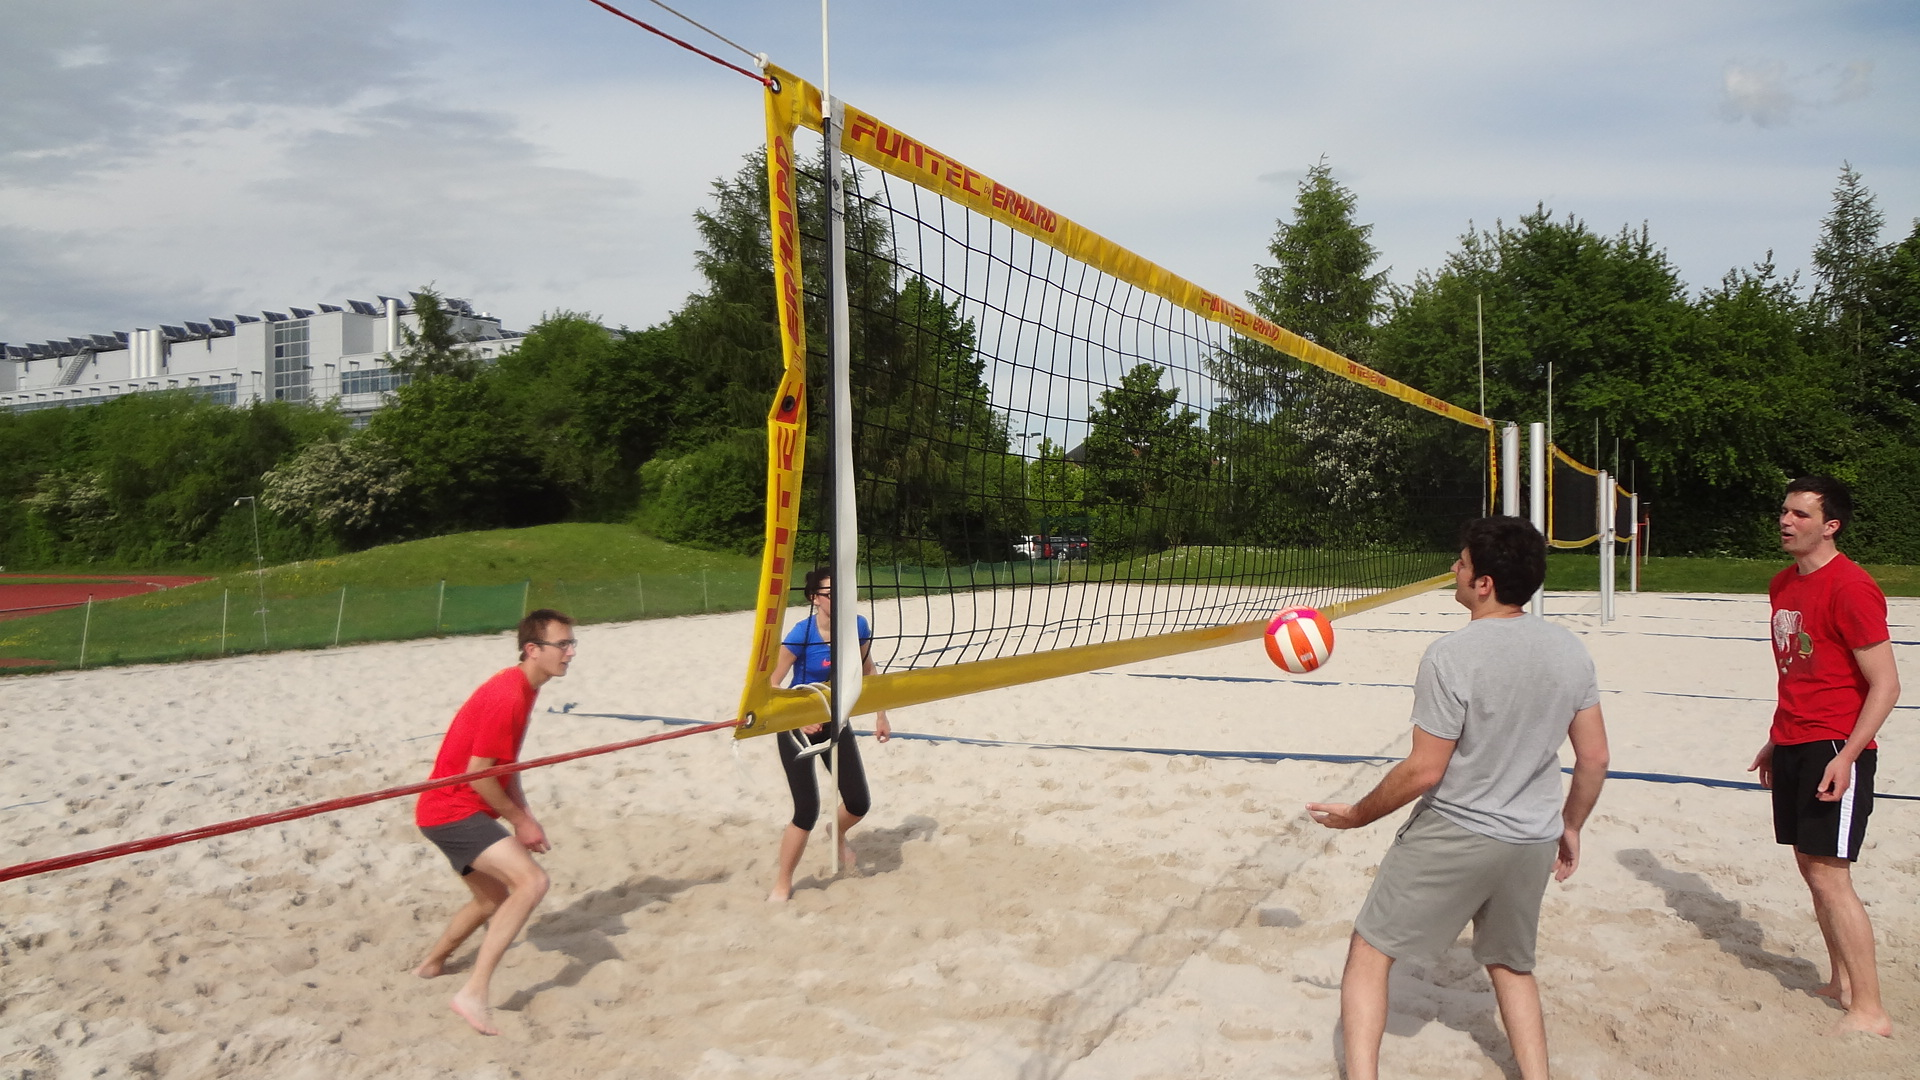 Playing beachvolleyball at the sportscenter